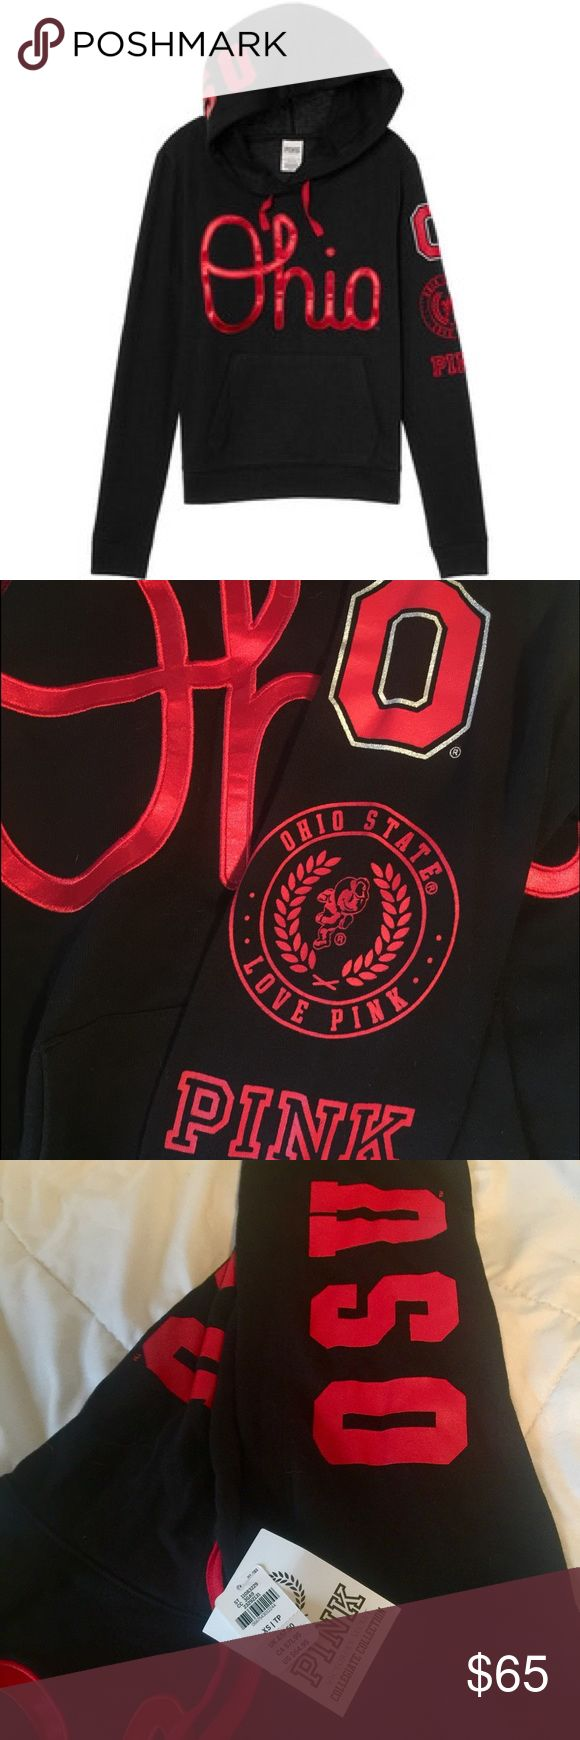 NWT Victoria's Secret Ohio State hoodie. New with tags XS black and red Victoria's Secret VS PINK pullover hoodie. OSU Ohio State Buckeye's NWT Victoria's Secret Tops Sweatshirts & Hoodies